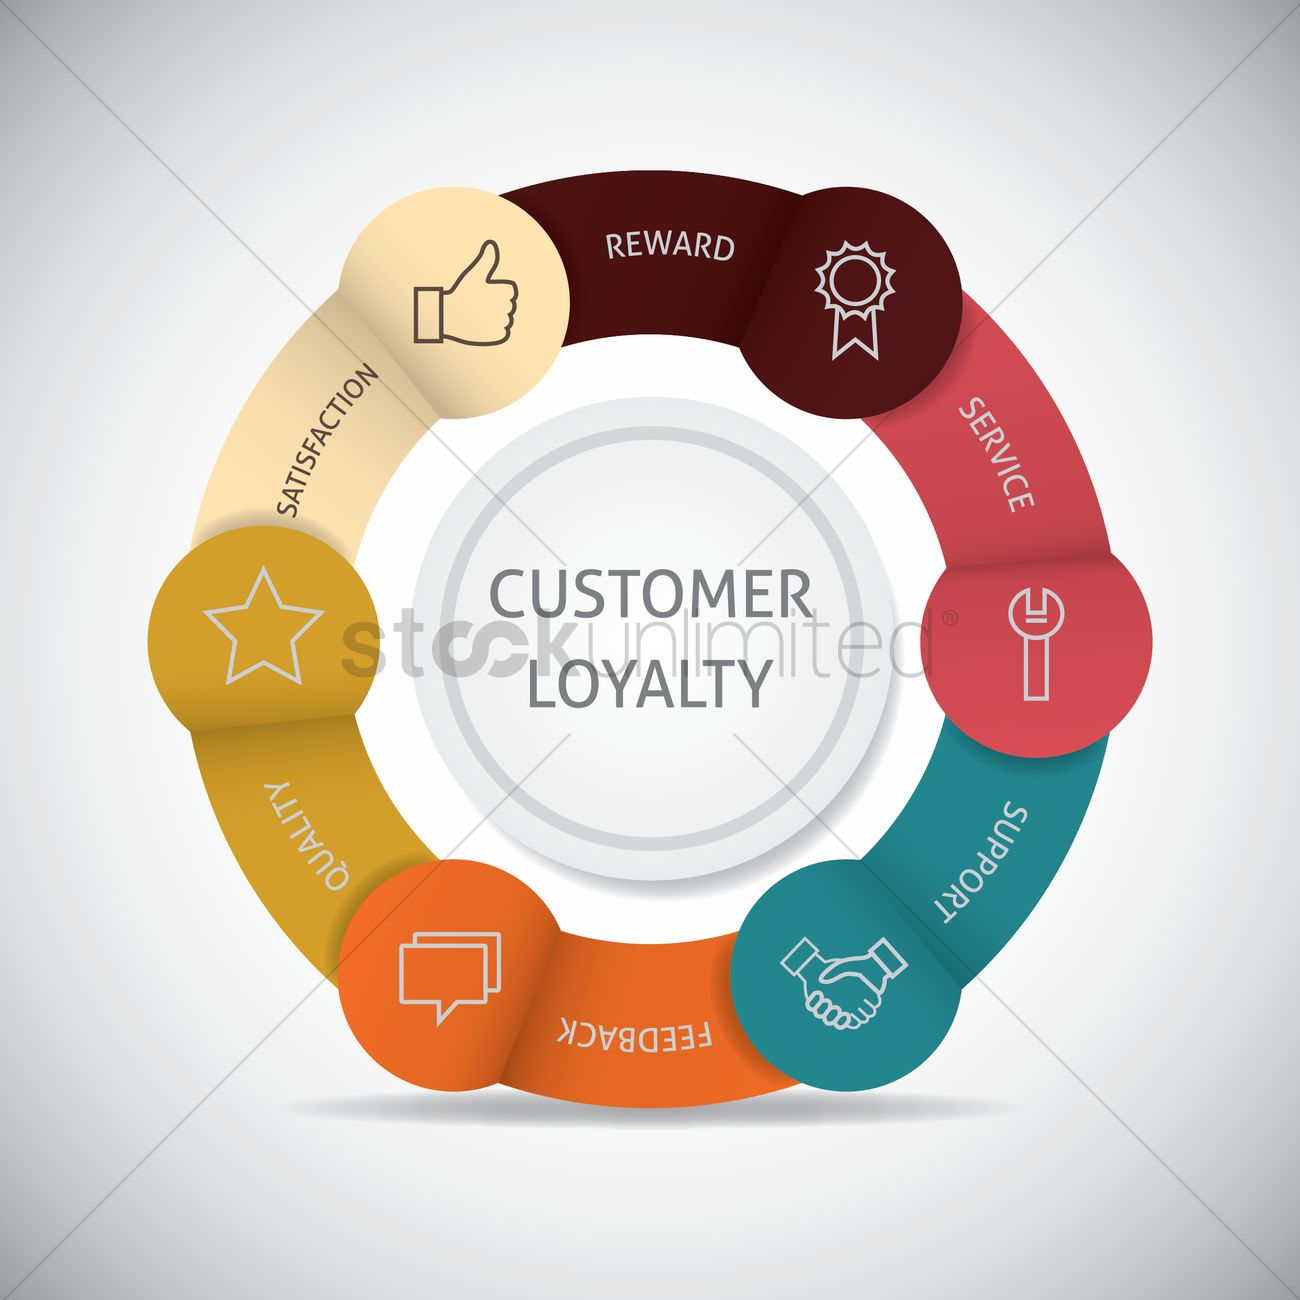 Customer Loyalty Infographic Vector Image 1596046